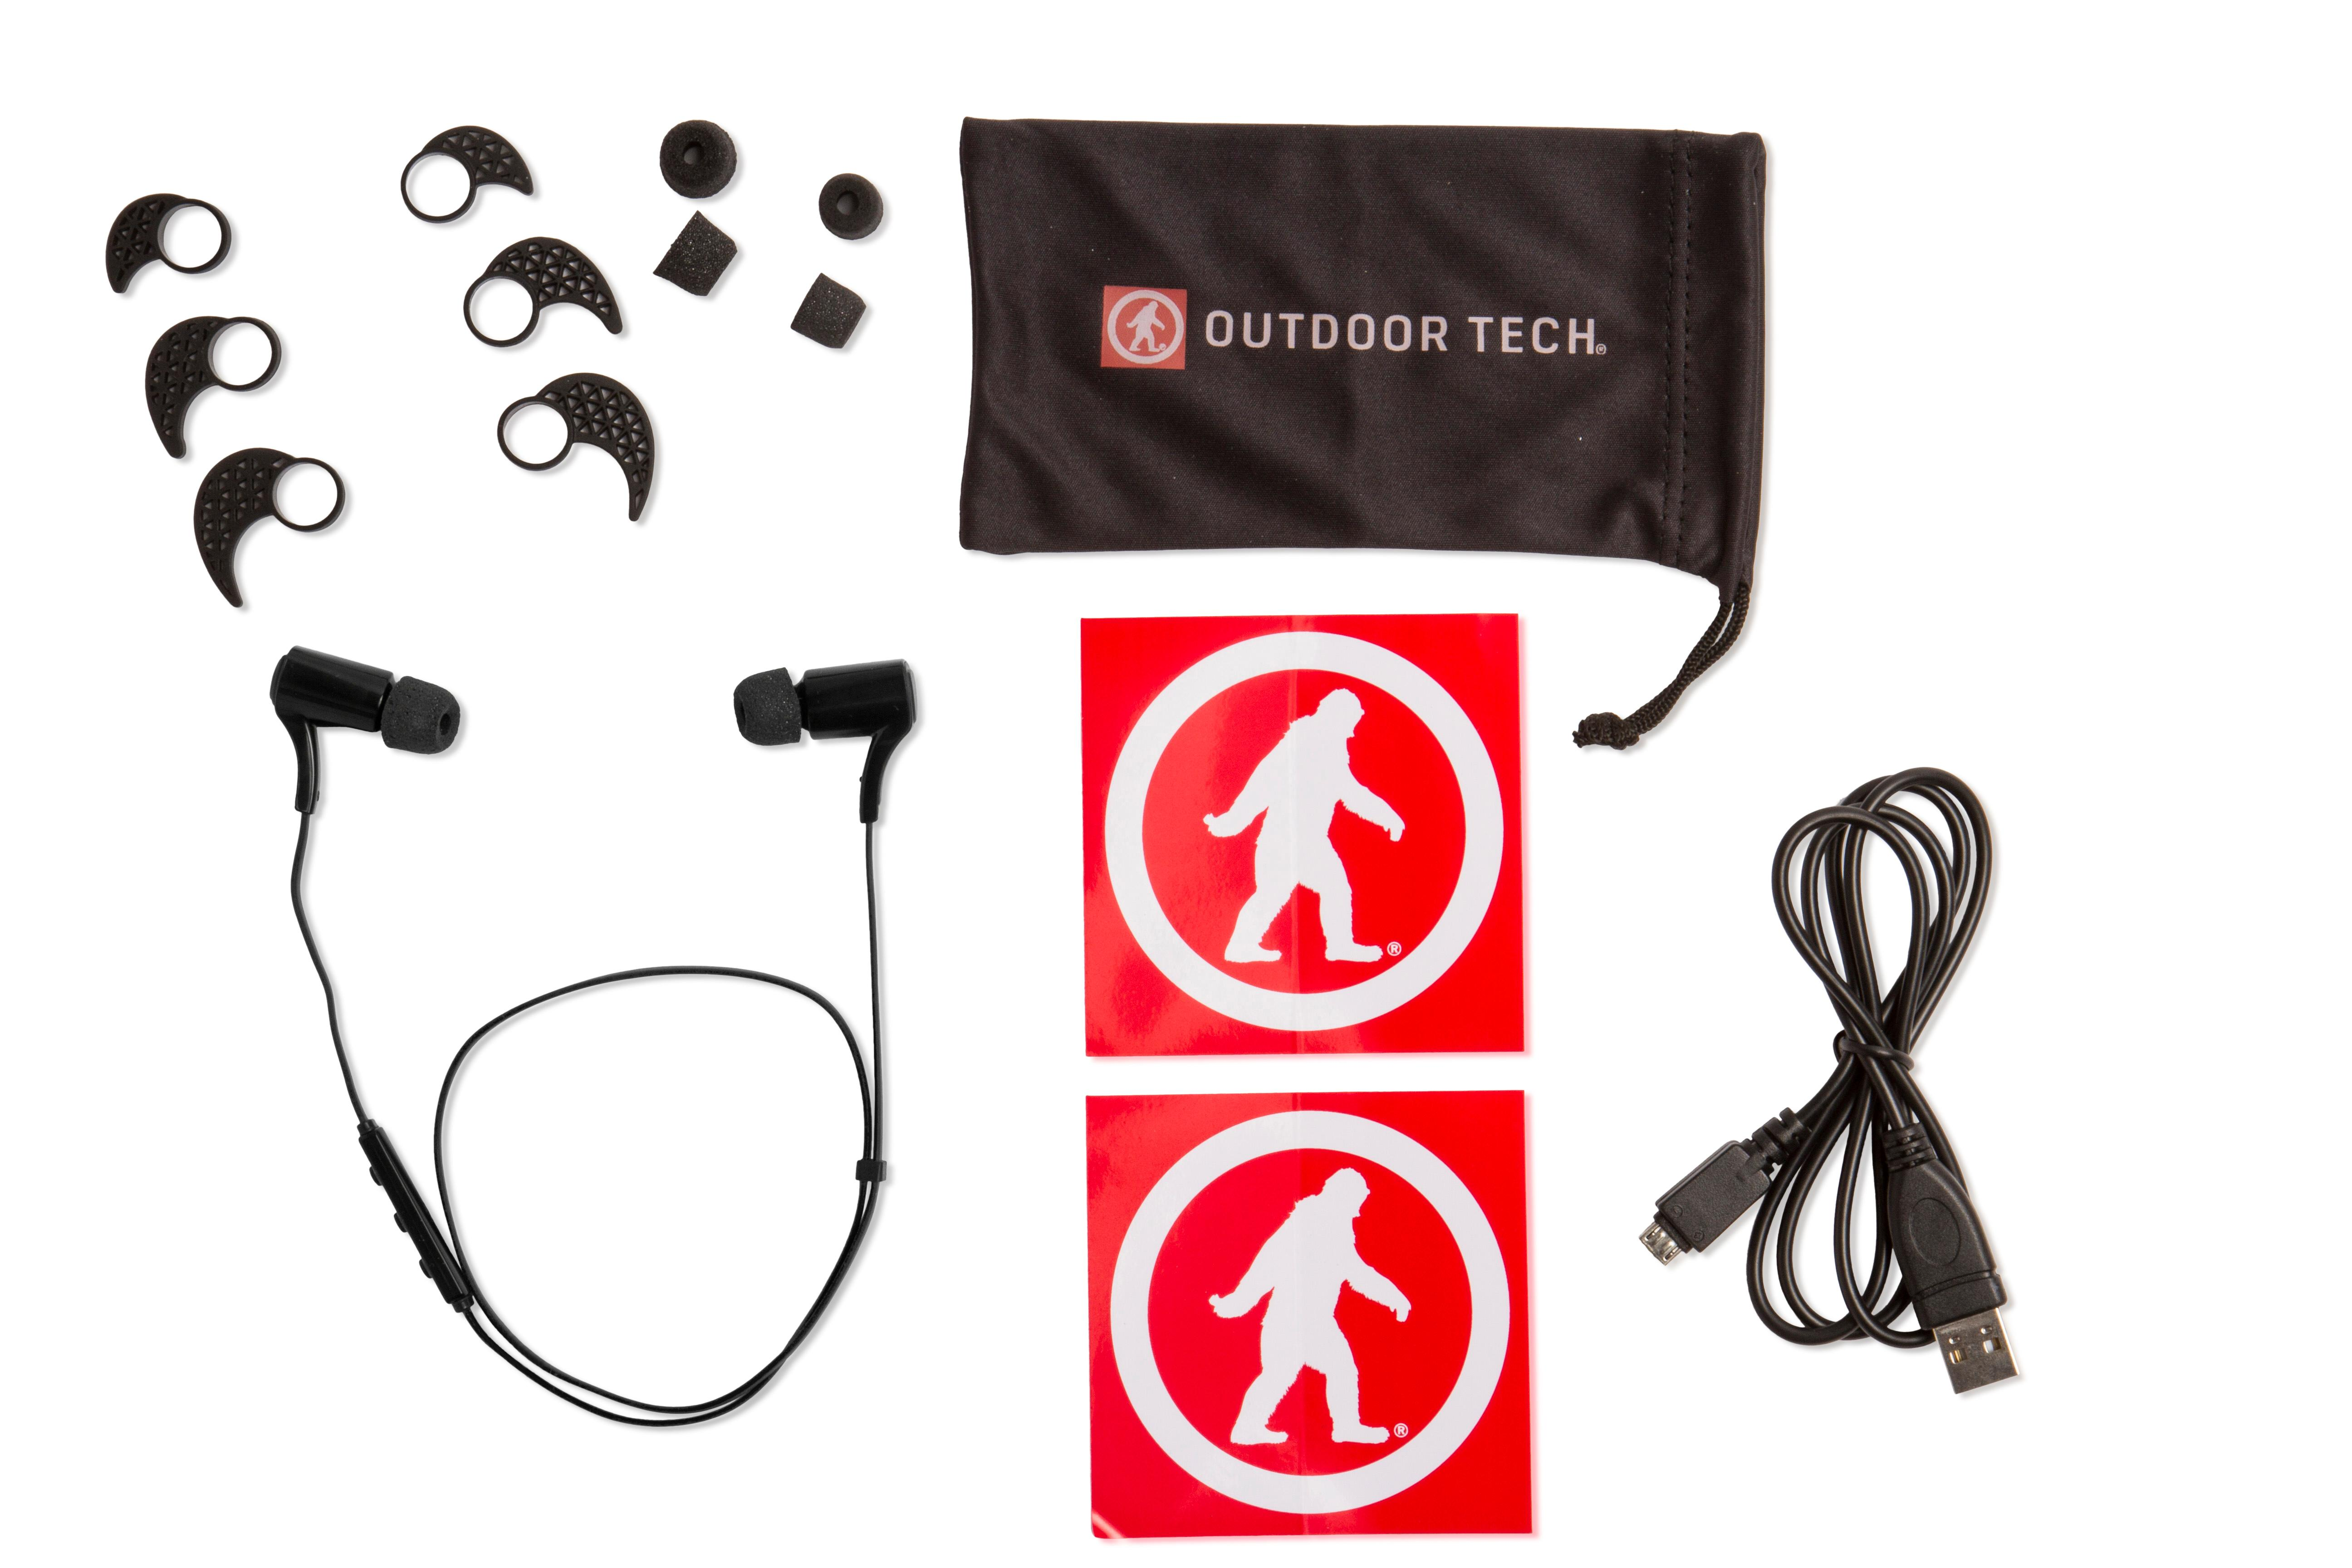 What are the best wireless earbuds right now? Discover the best Bluetooth in-ear headphones of today. Comparison Table: Best Bluetooth Earbuds Related guides: Top Bluetooth headphones guide Earbuds with best comfort reviewed After considering dozens of wireless Bluetooth earbuds and putting in 30+ hours into research we made this guide to help.